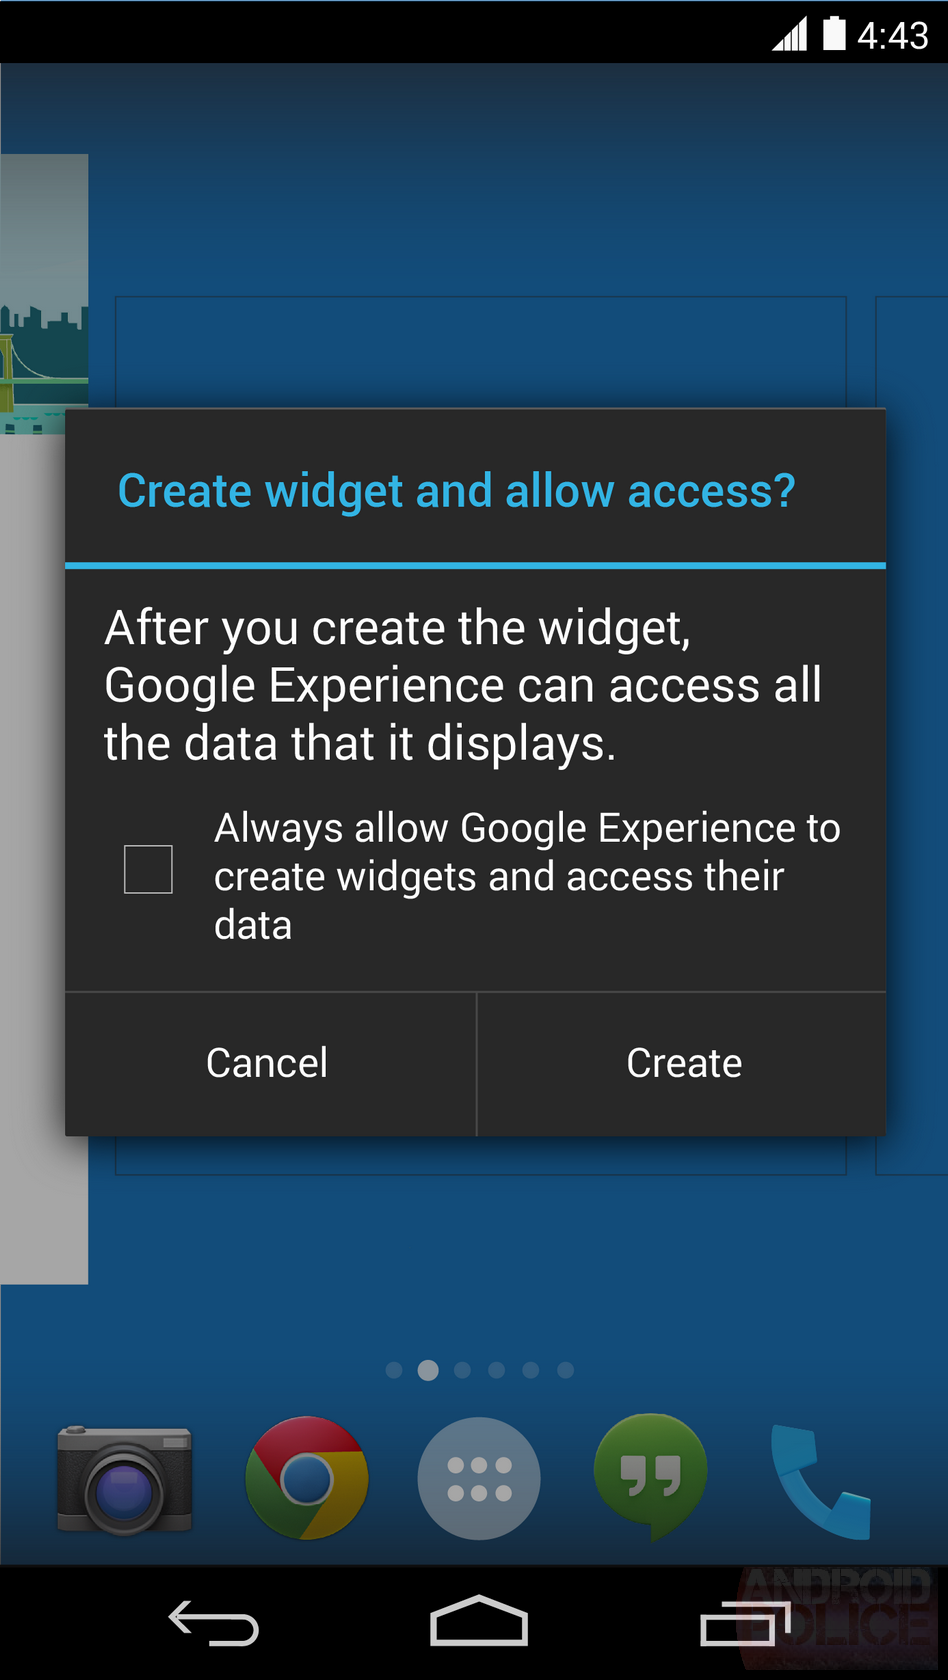 [Rumor] Google's New Launcher In Android 4.4 Is Called 'Google Experience' - Here Are Some Things We Are Expecting To See In It